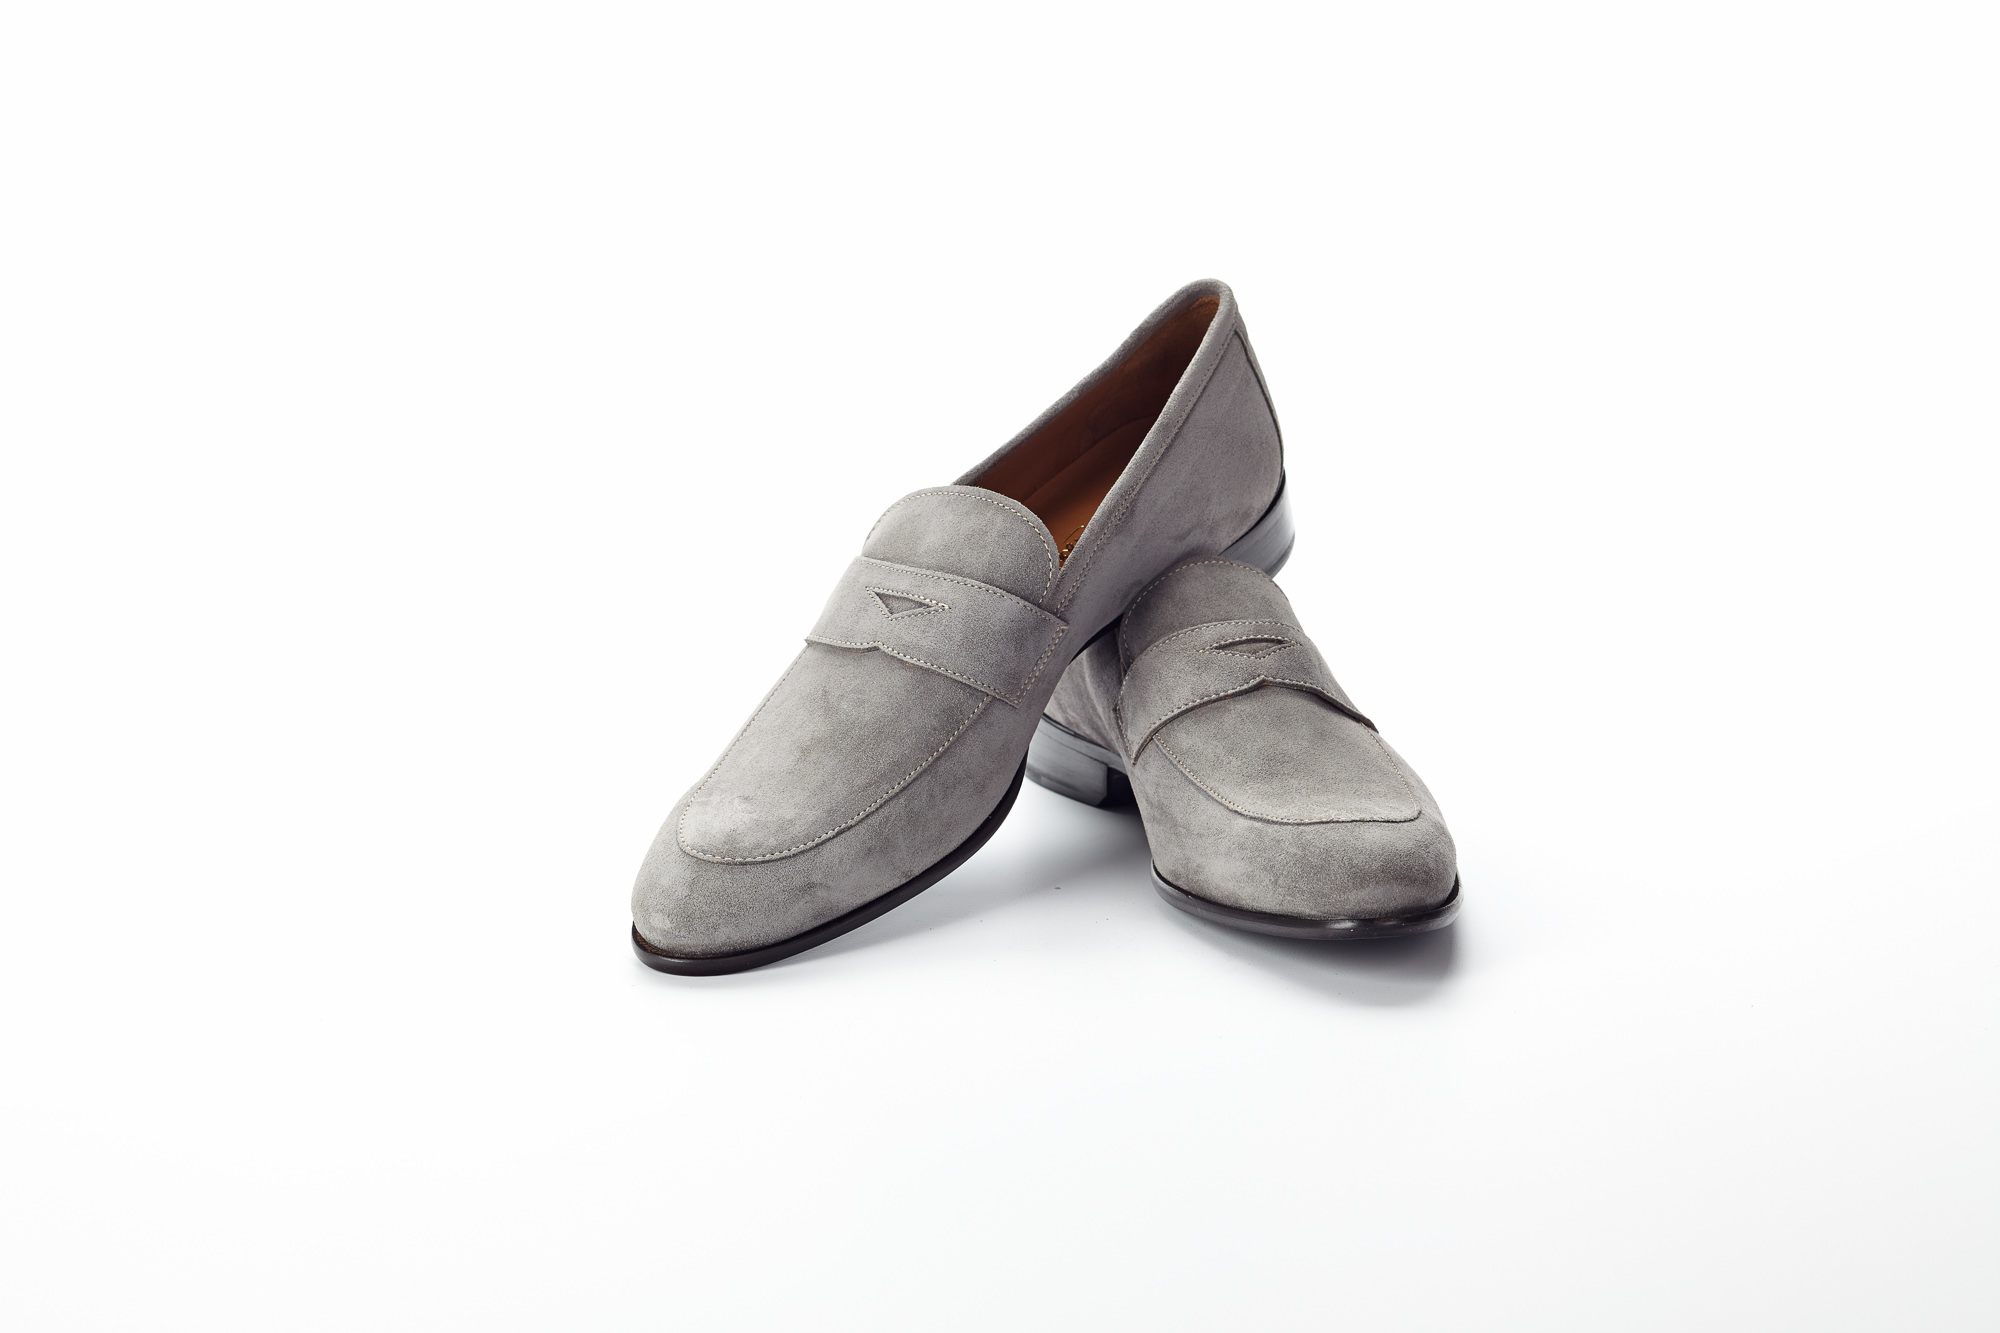 Paul Evans Stewart Penny Loafer In Grey Suede